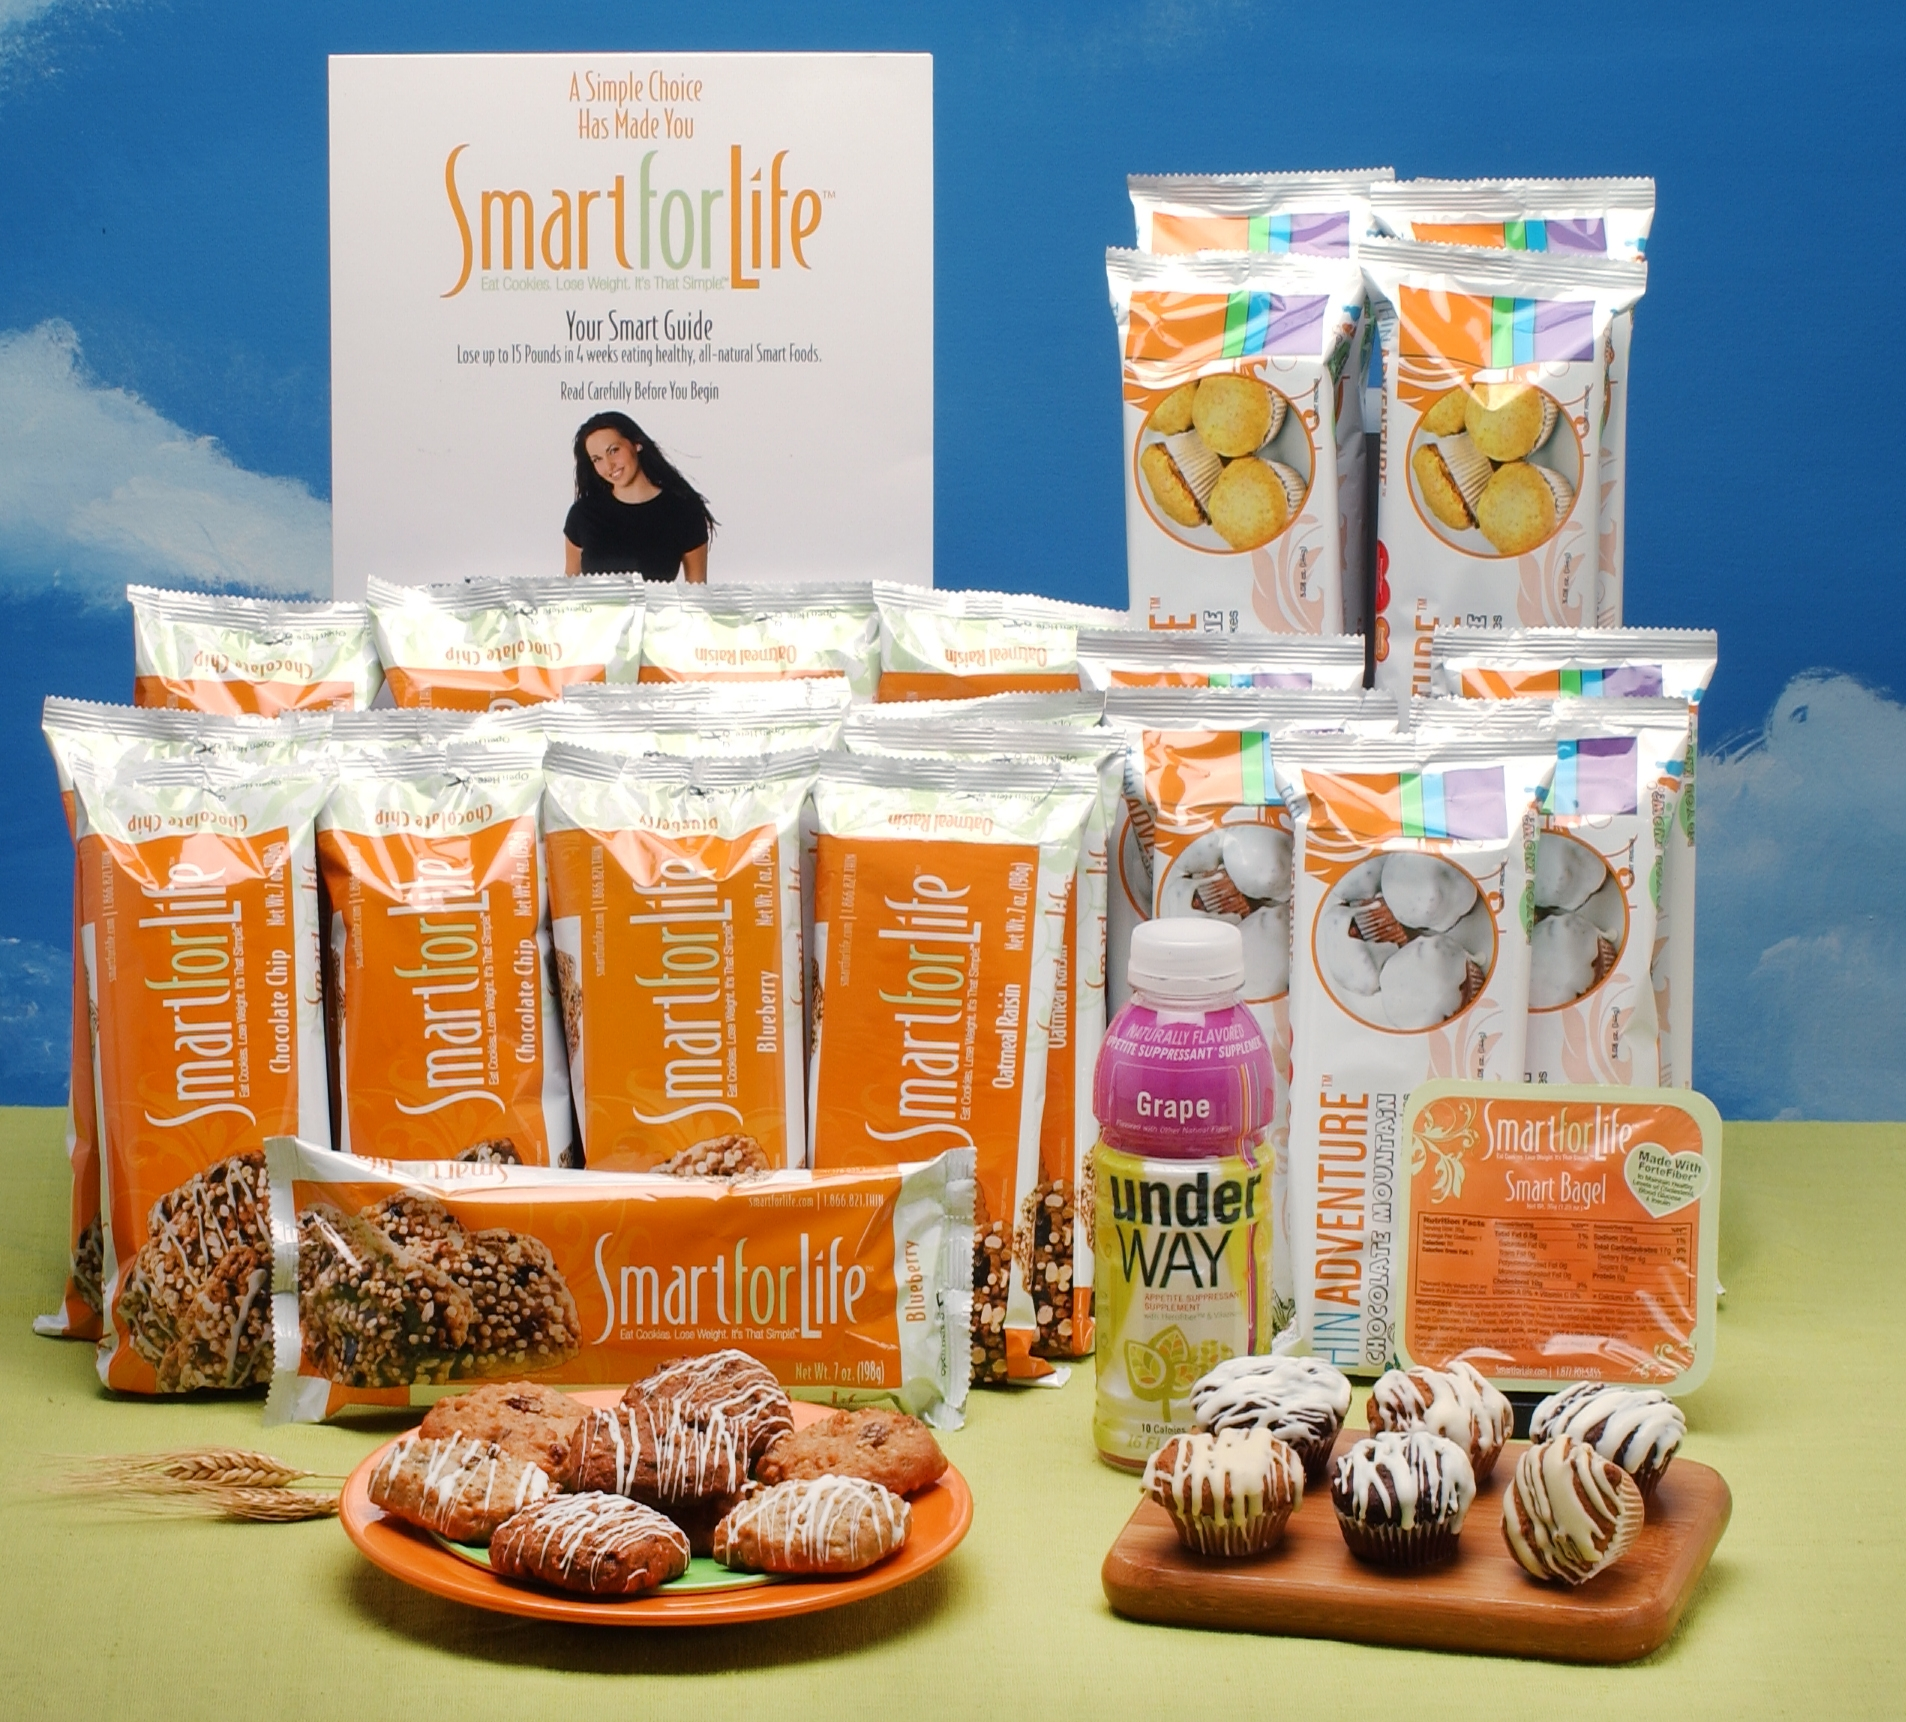 Smart%20for%20Life%20products